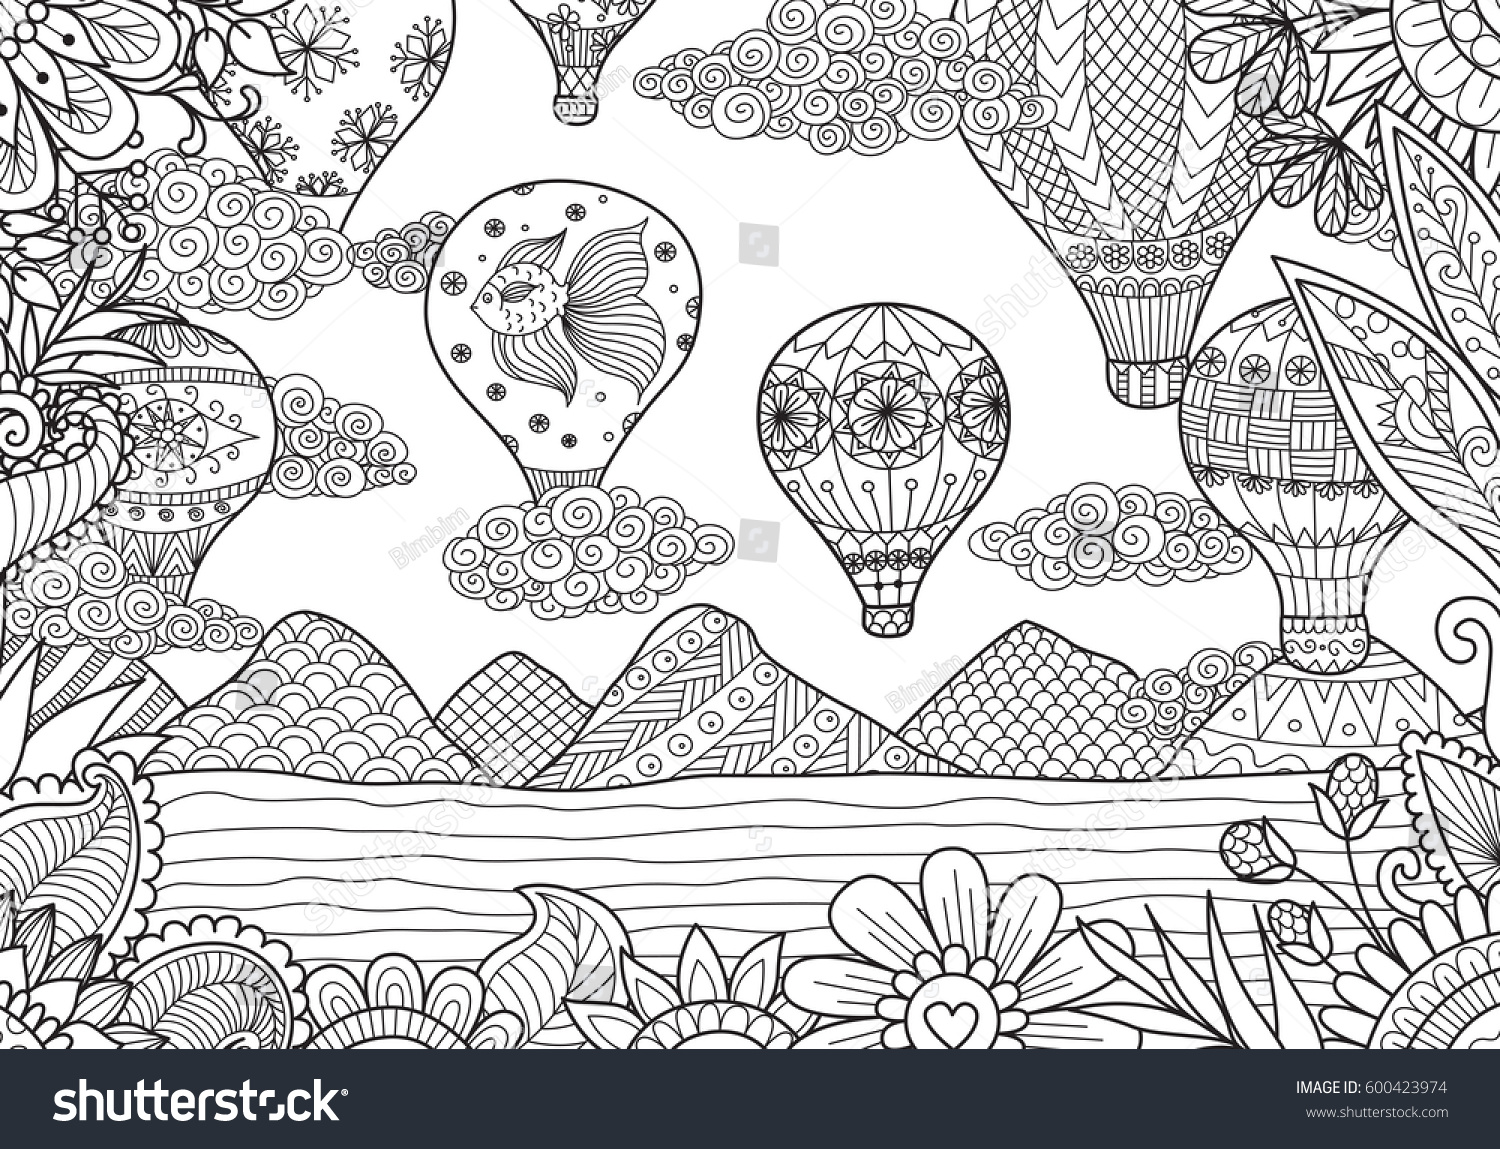 Line Art Design Of Hot Air Balloons In Spring And Summer Time For Coloring  Page And